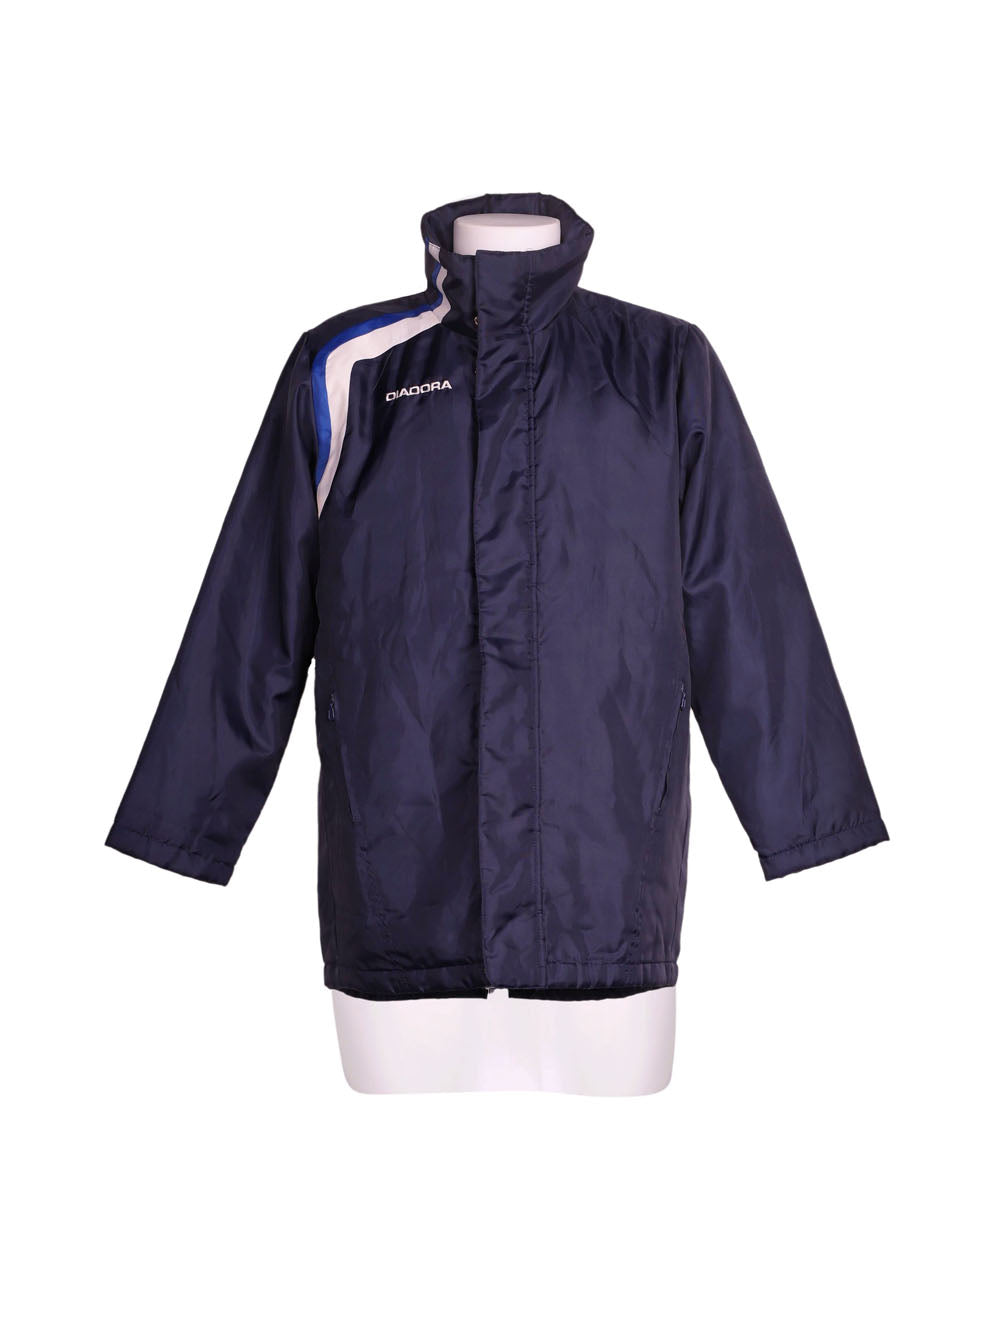 Front photo of Preloved Diadora Blue Man's jacket - size 36/S